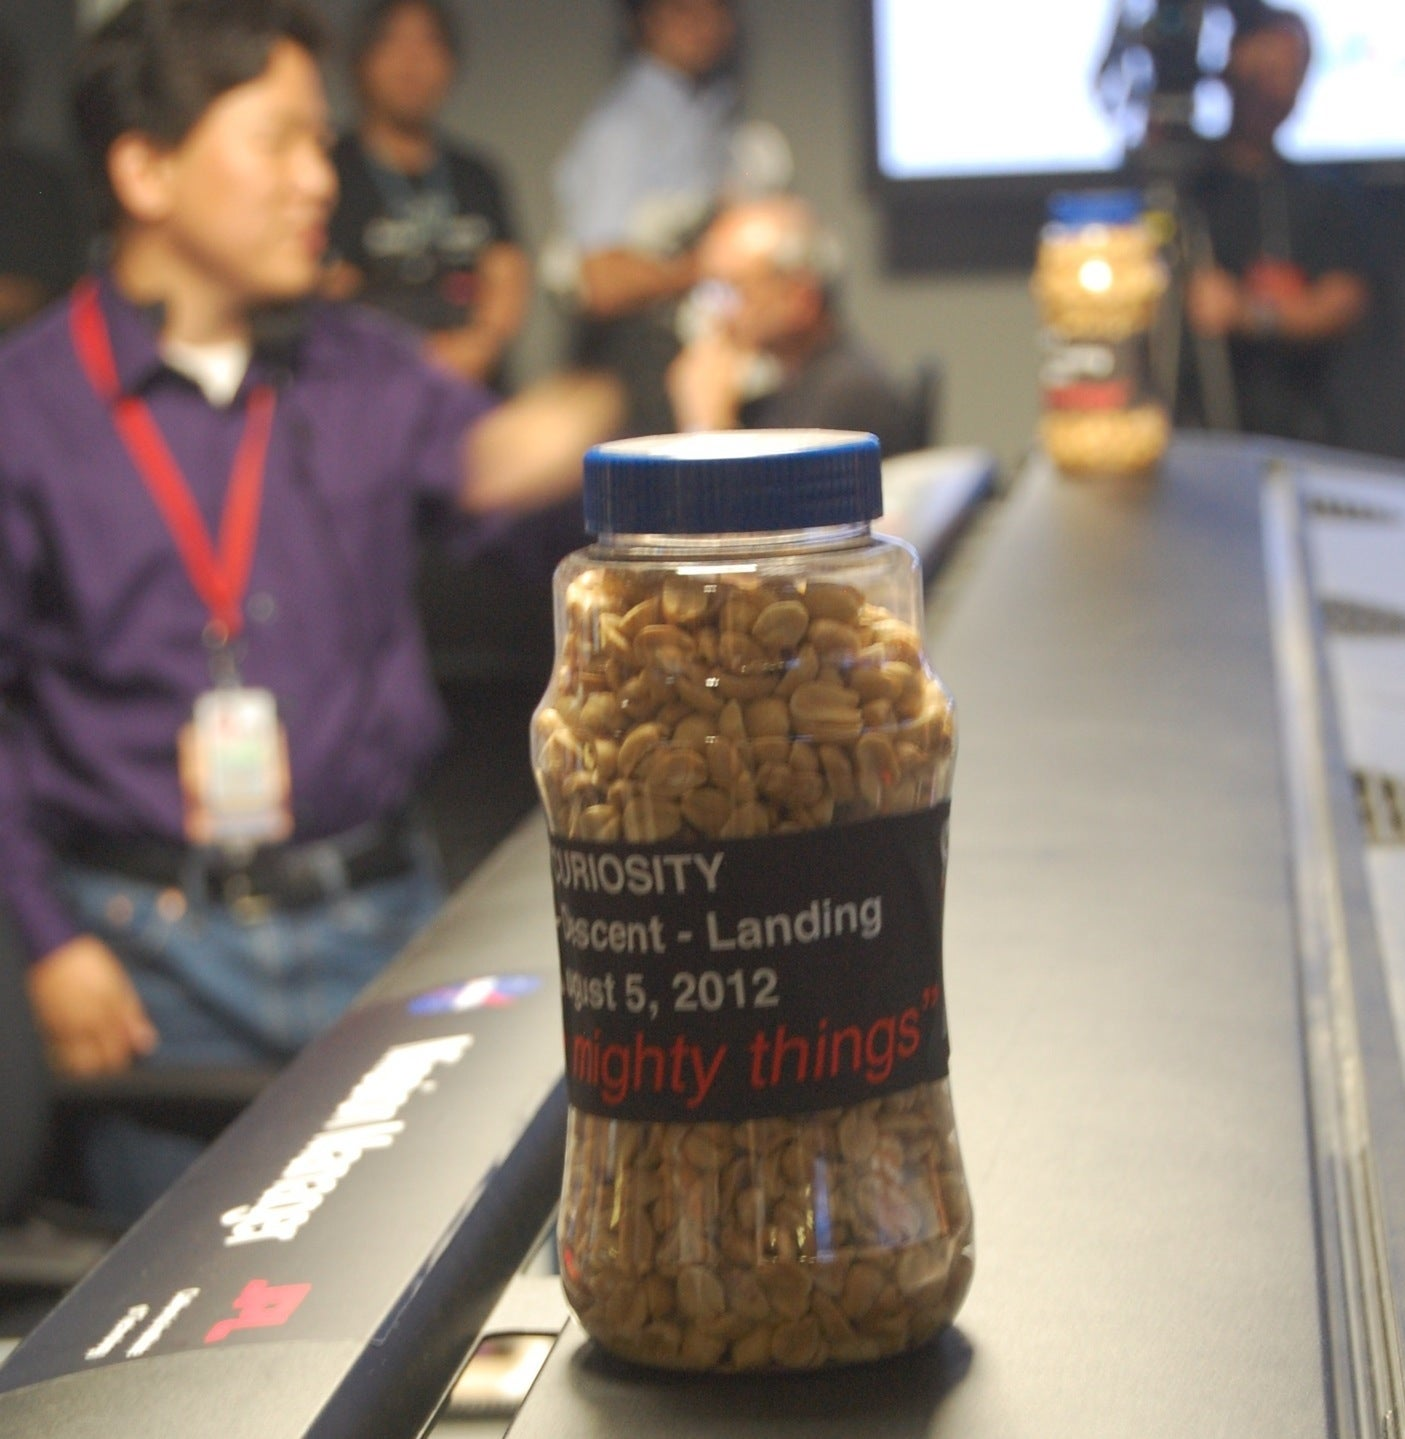 The Scene at NASA's Mars Rover Landing Watch: Peanuts, Playoff Beards and Other Curiosities